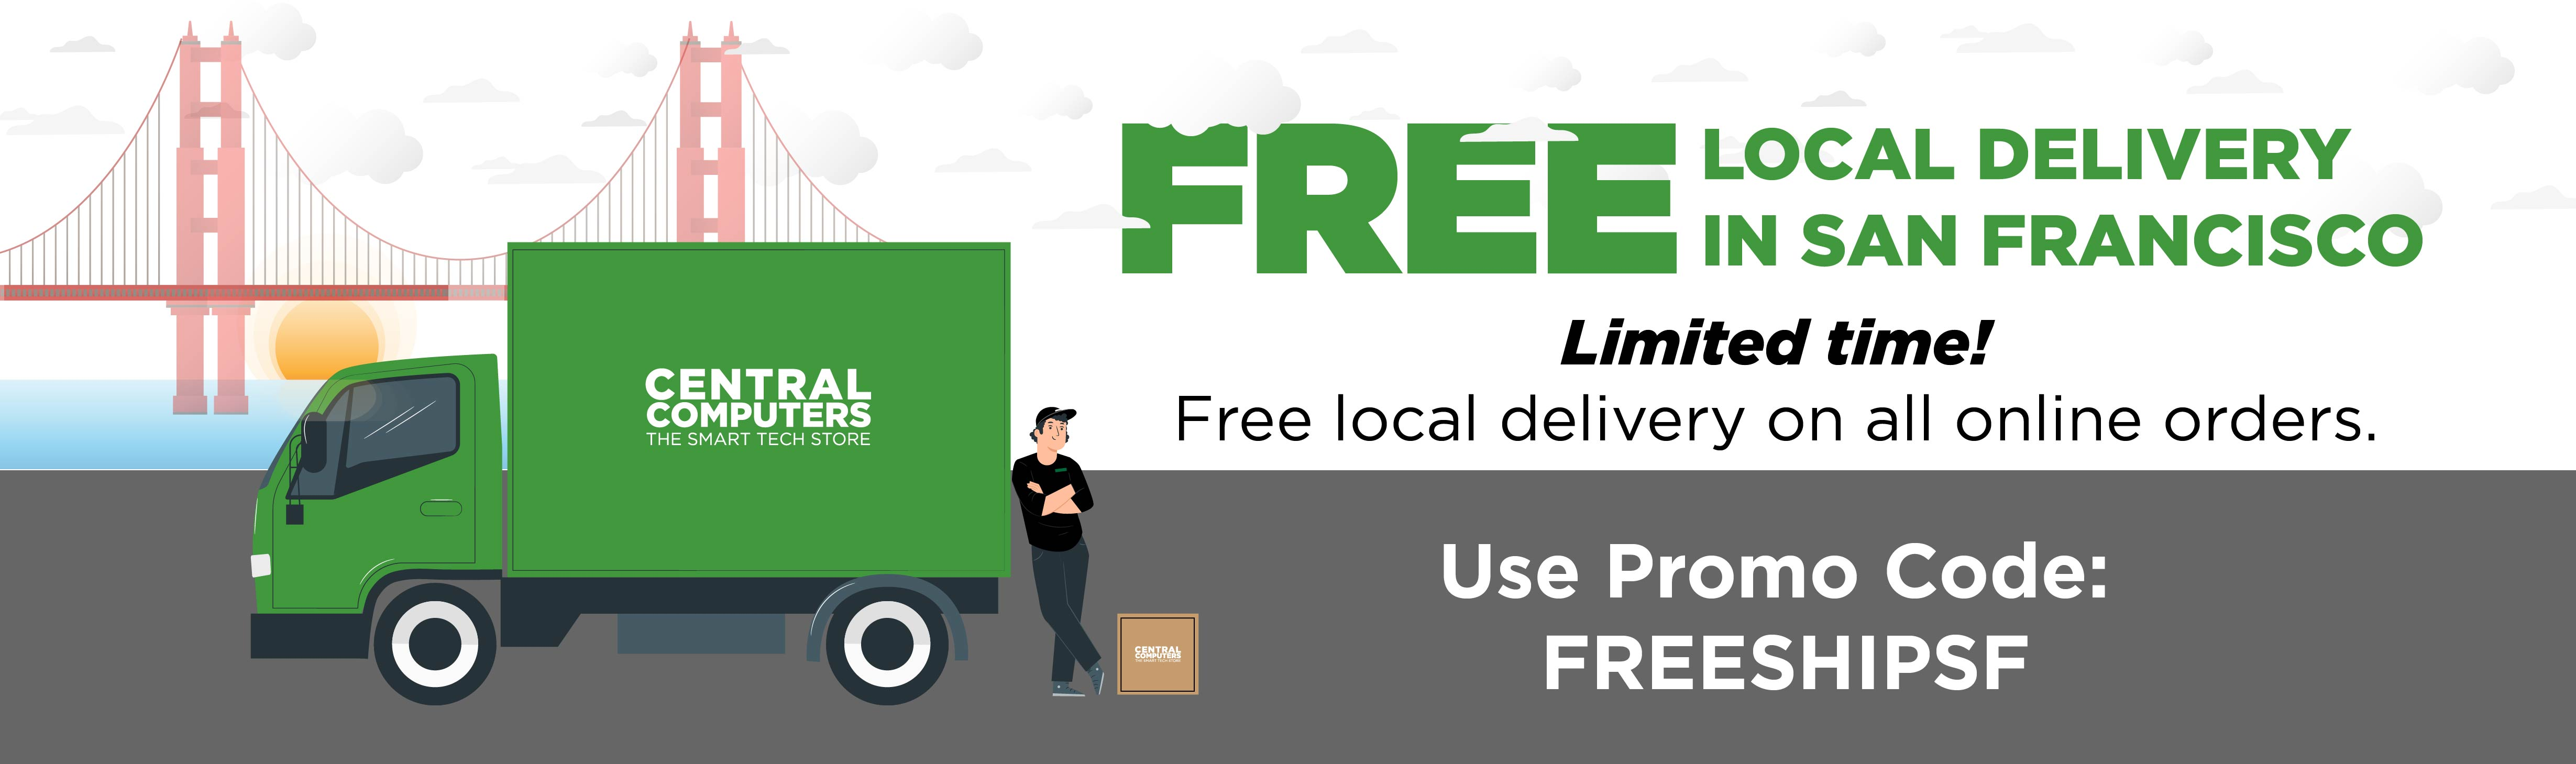 Free Local Delivery in San Francisco